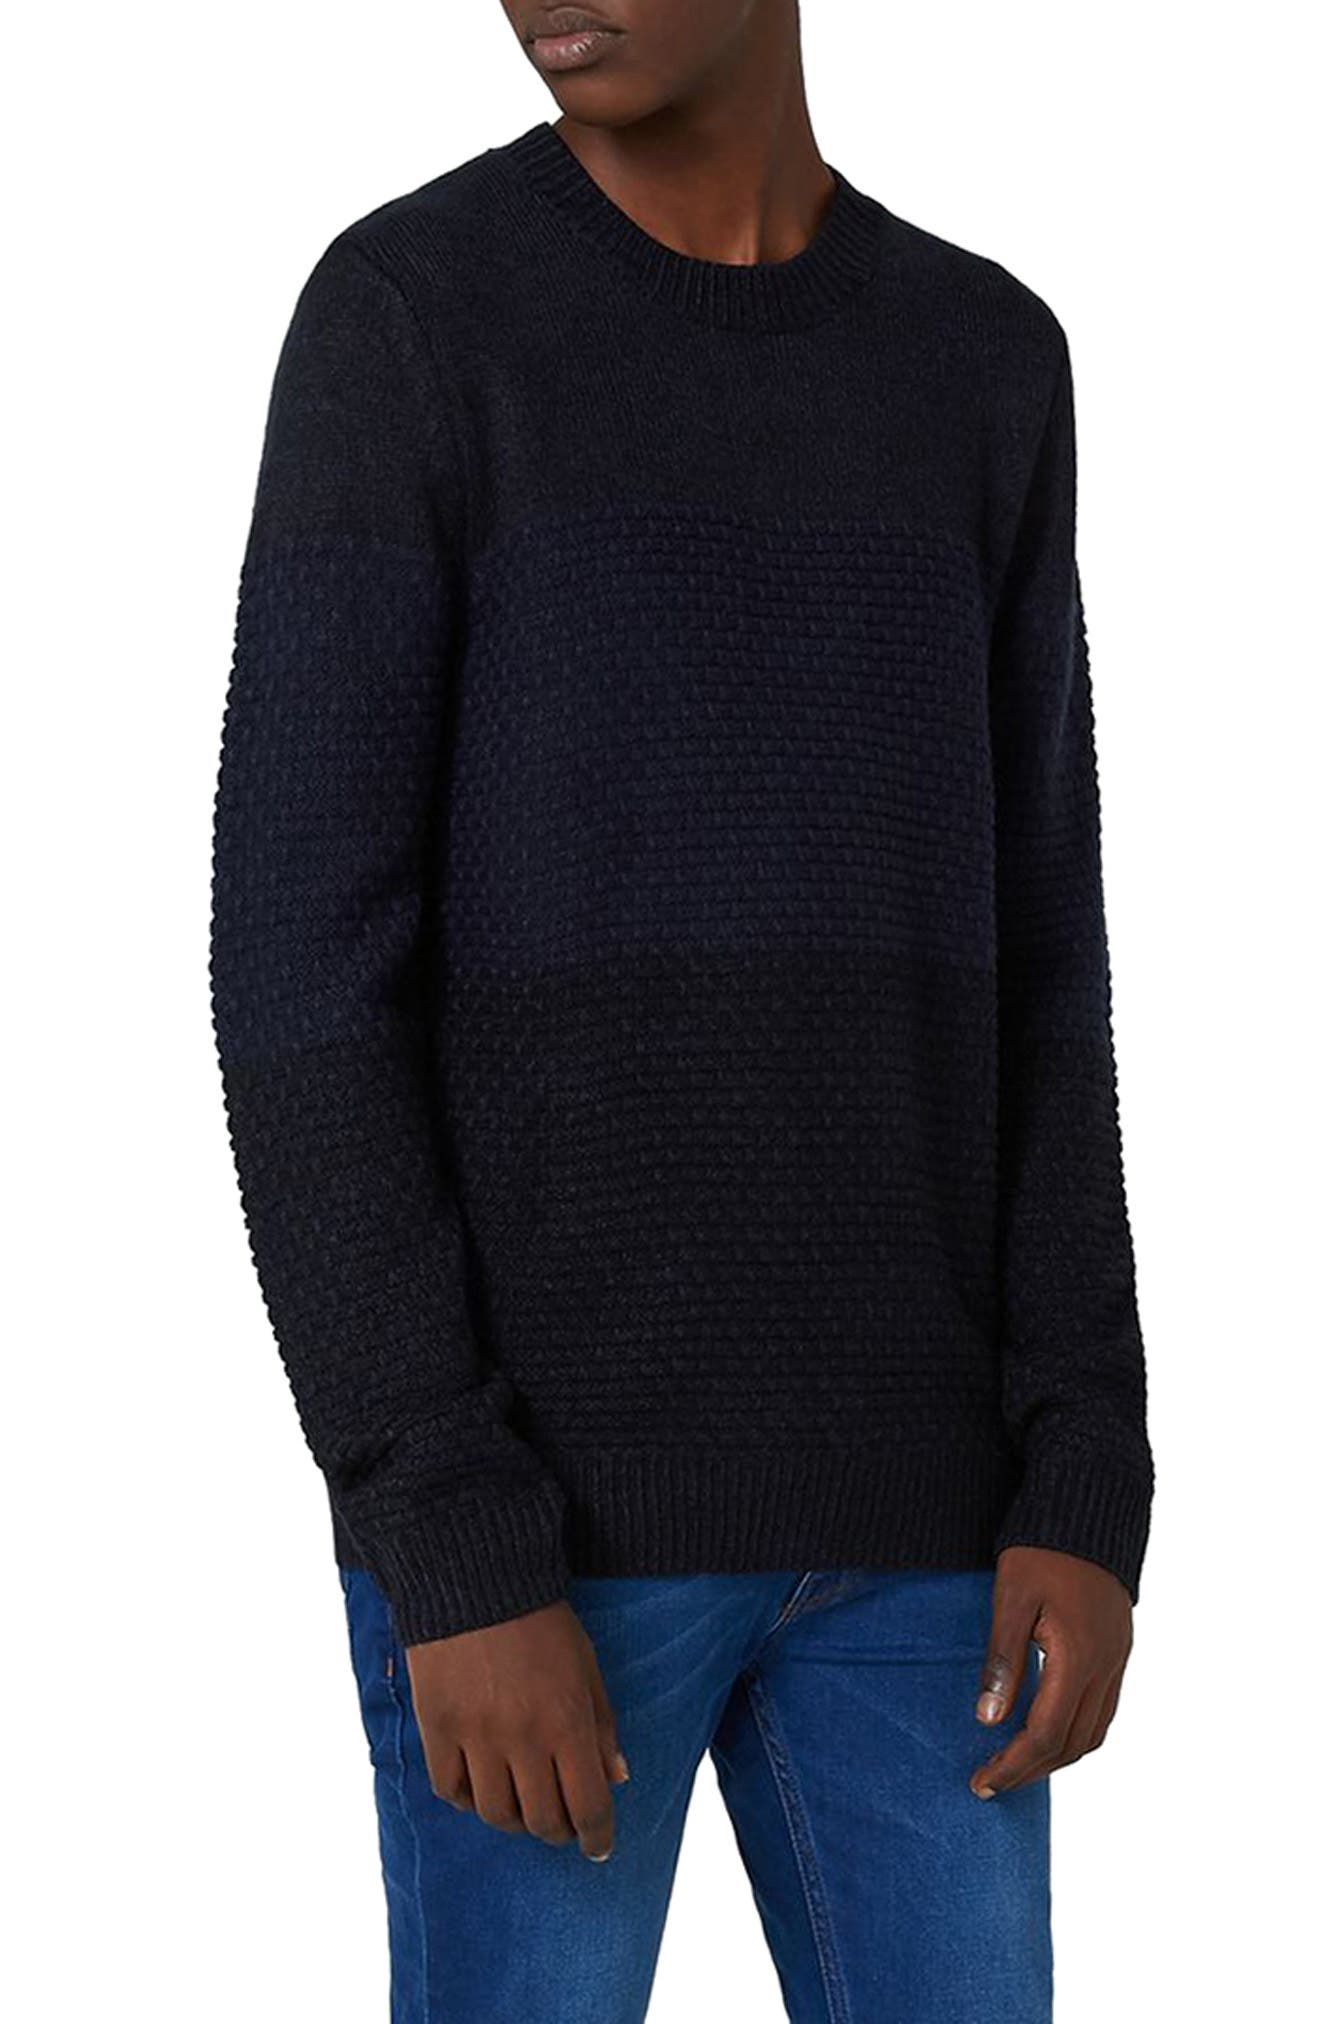 Topman Texture Panel Sweater